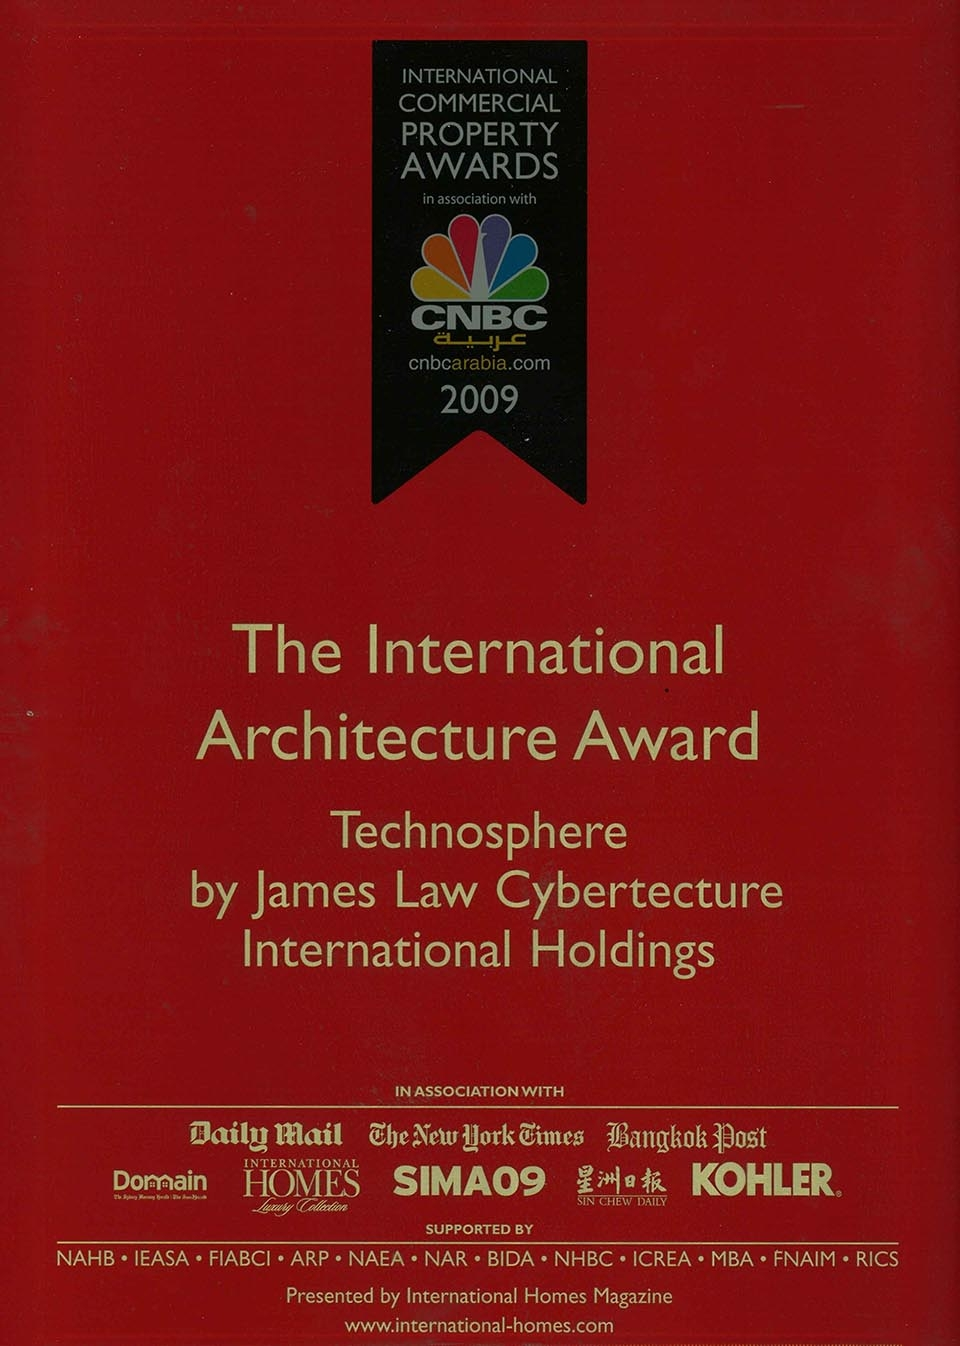 2009 CNBC International Commercial Property Awards - The International Architecture Award (Technosphere)